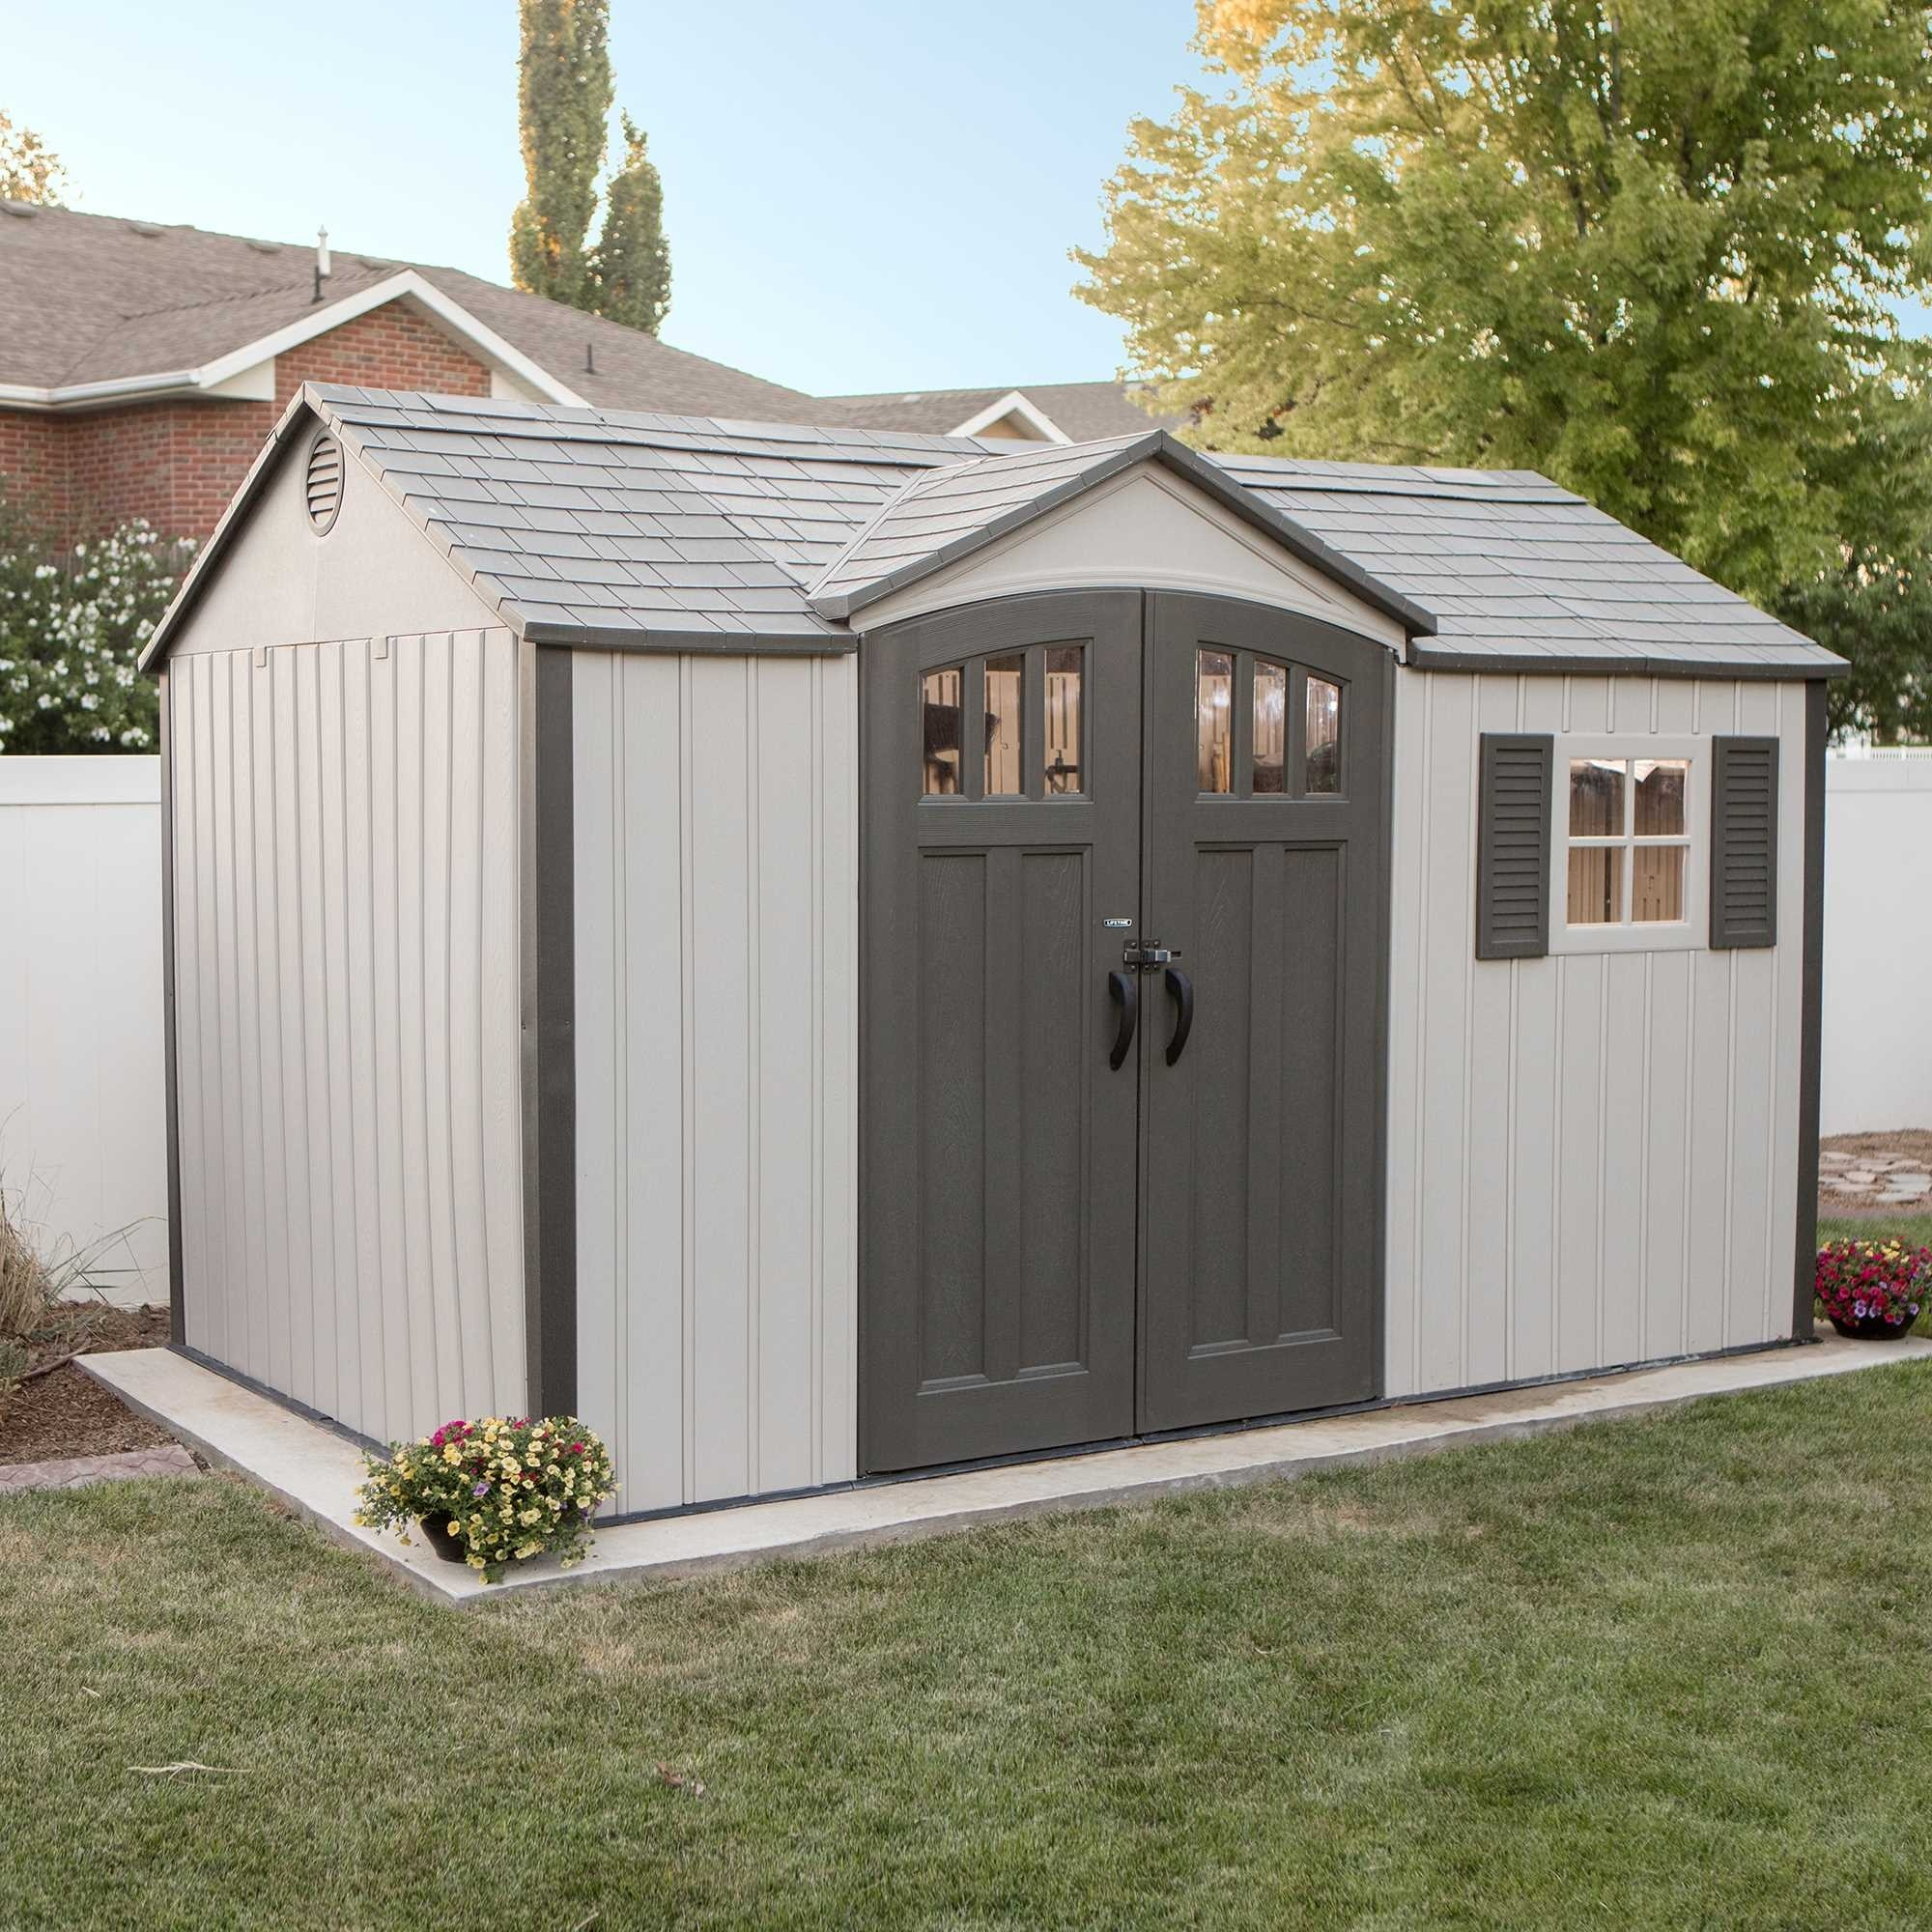 Lifetime 12.5x8 Single Entrance Plastic Shed - New Edition